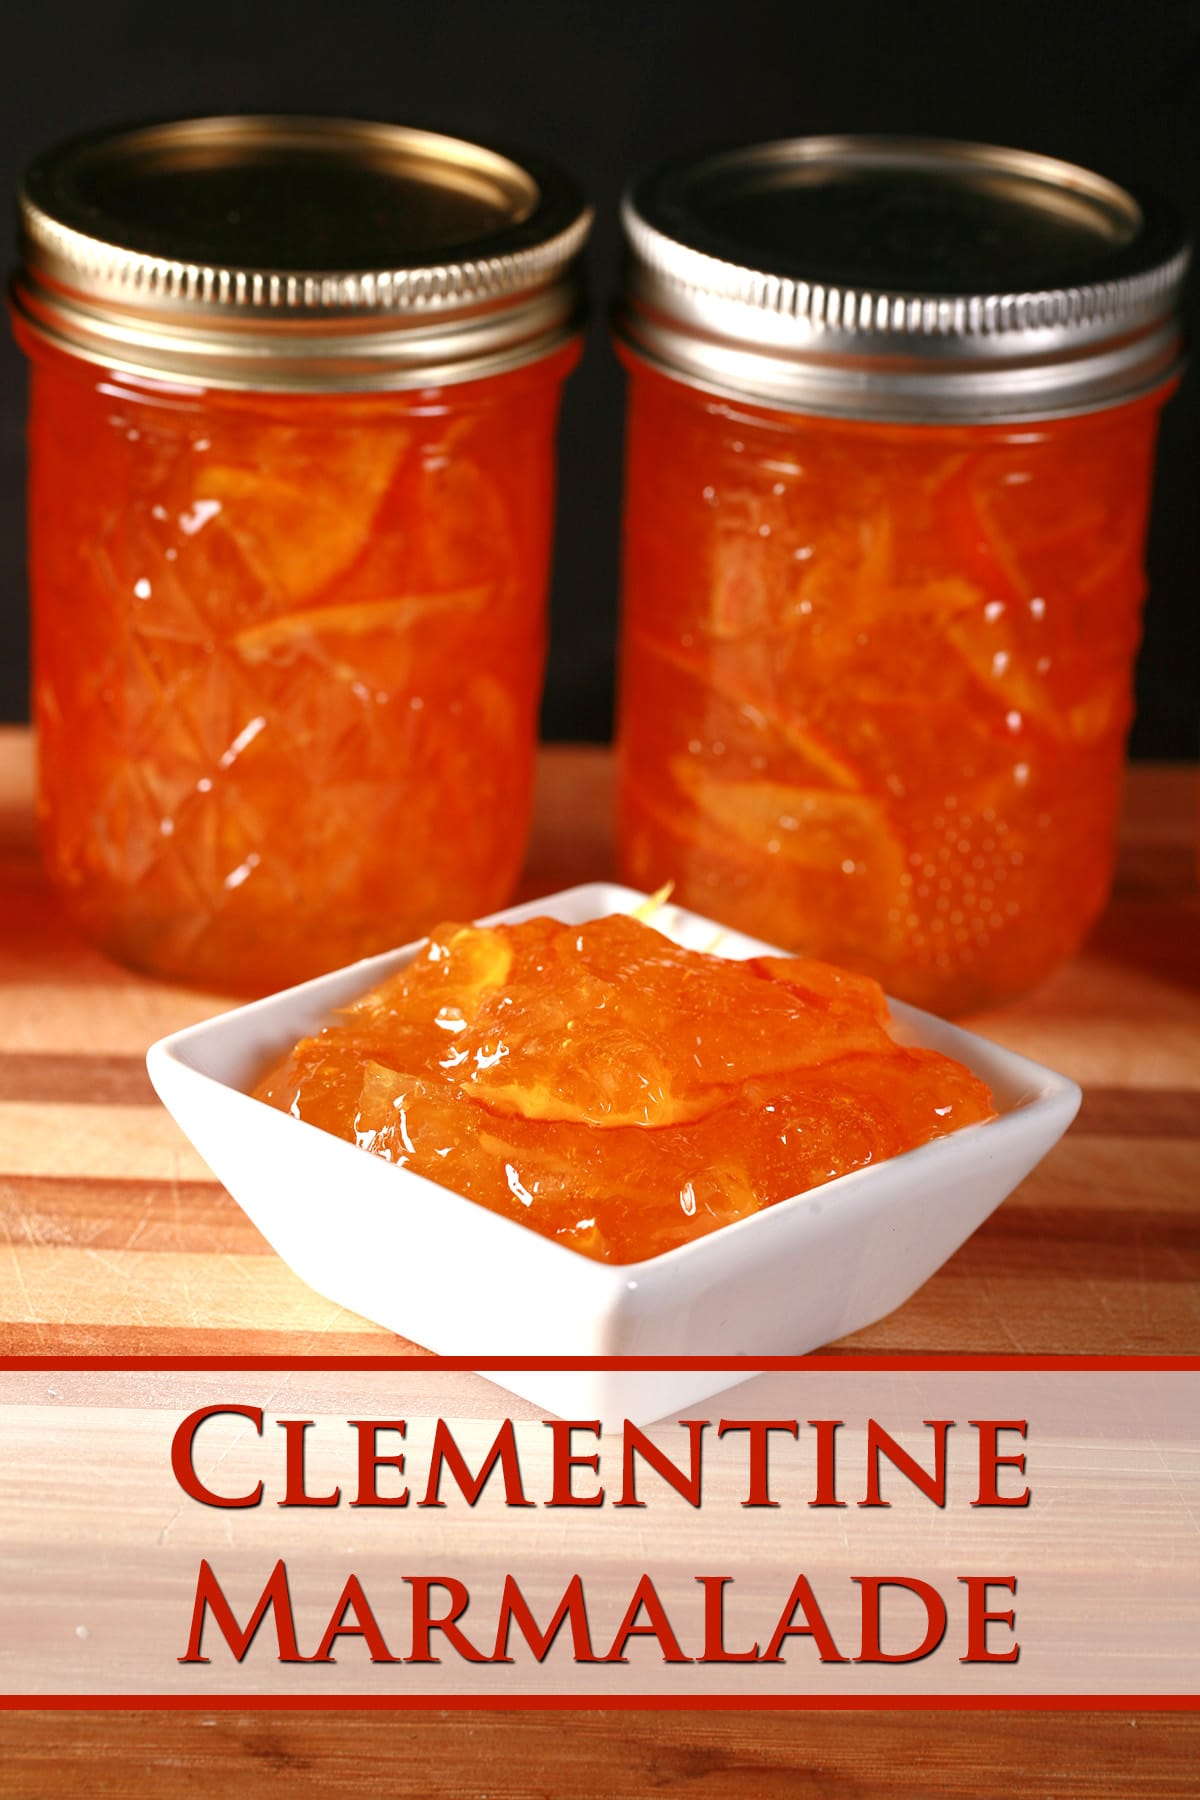 A row of small jars of clementine marmalade, with a small dish of marmalade in front.